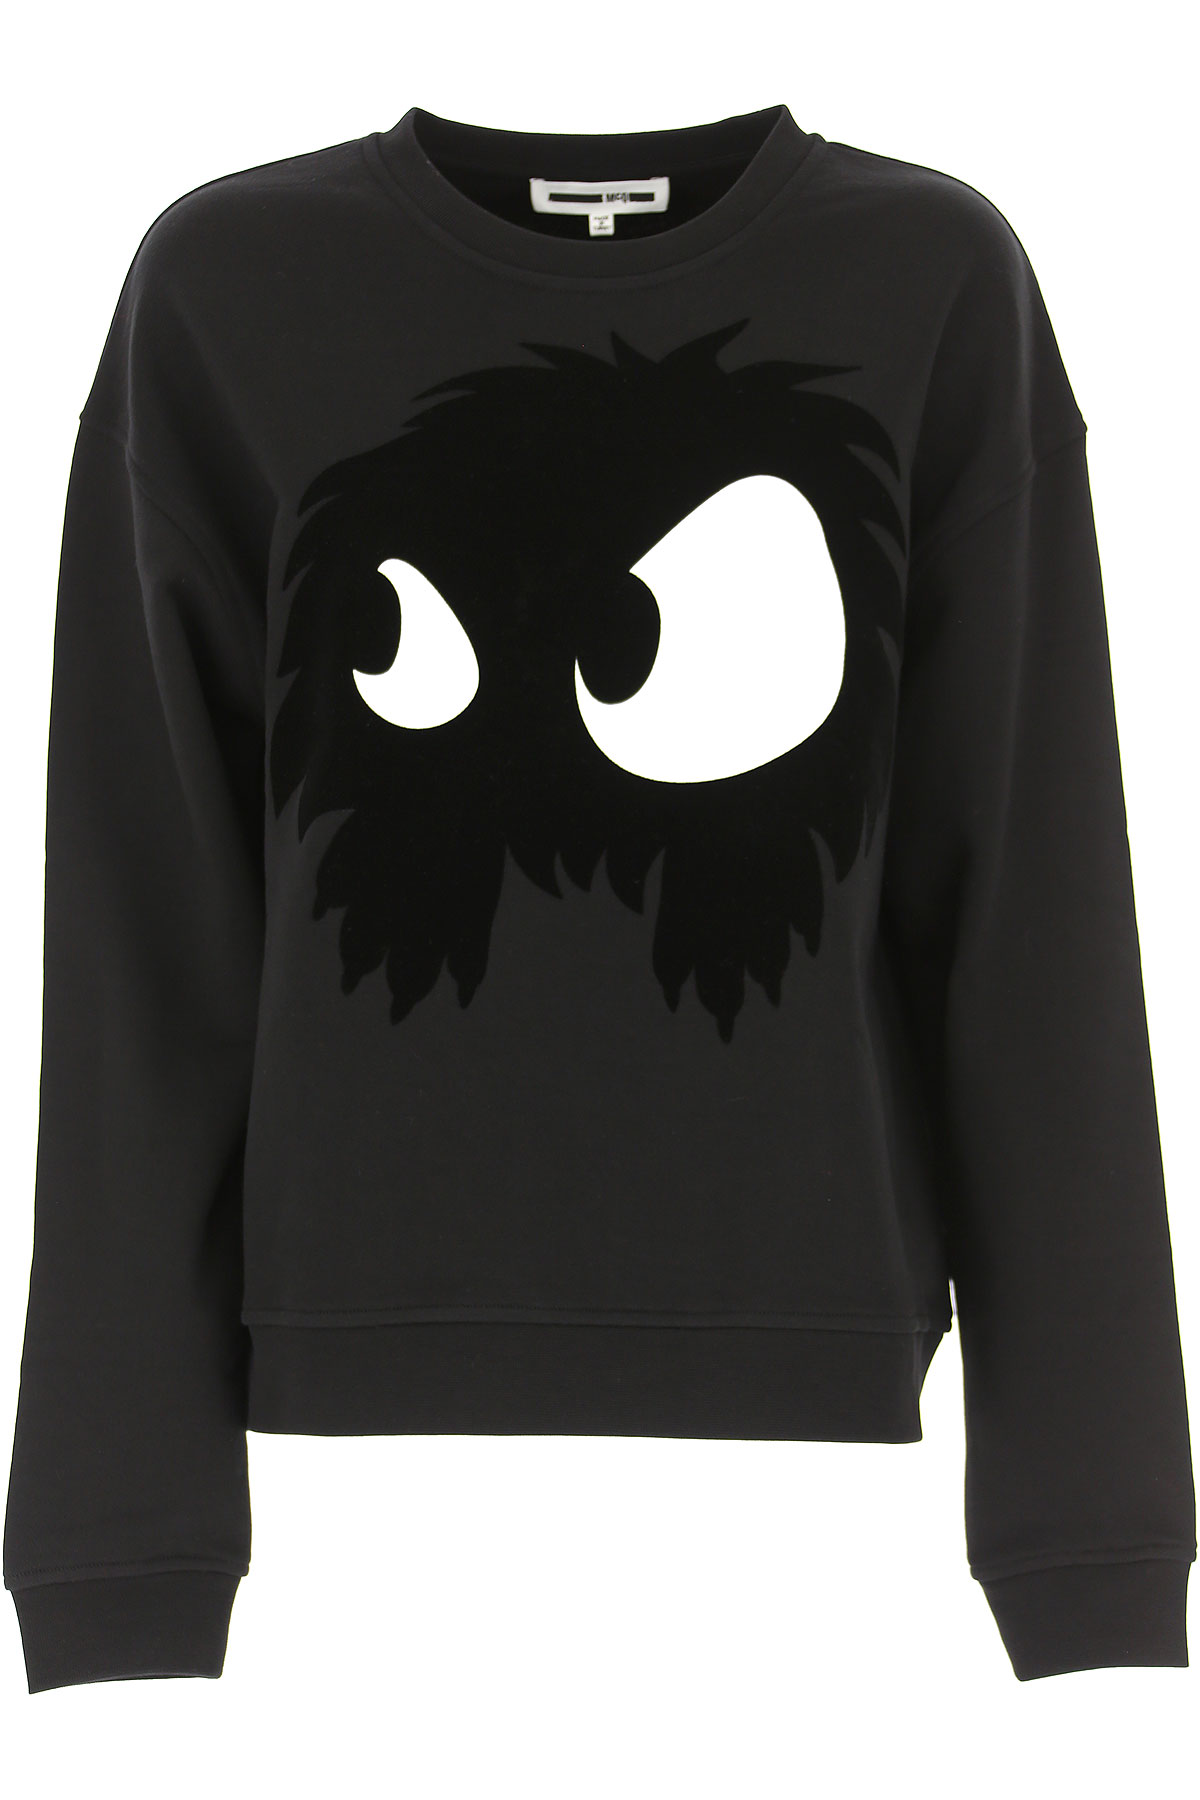 Image of Alexander McQueen McQ Sweatshirt for Women, Black, Cotton, 2017, 2 4